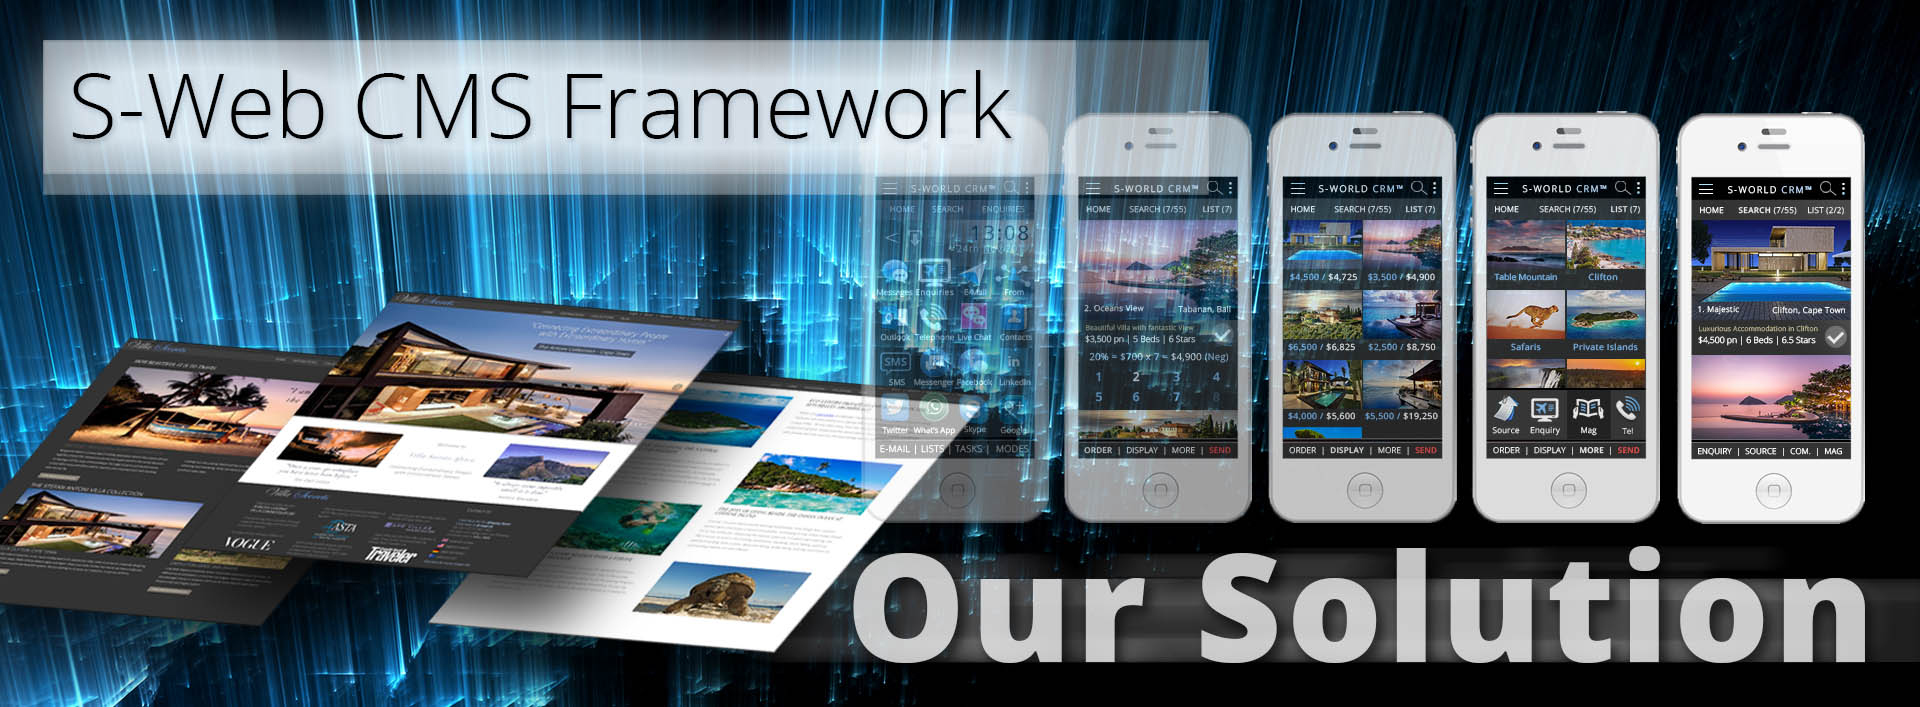 S-Web CMS Framework-Our Solution